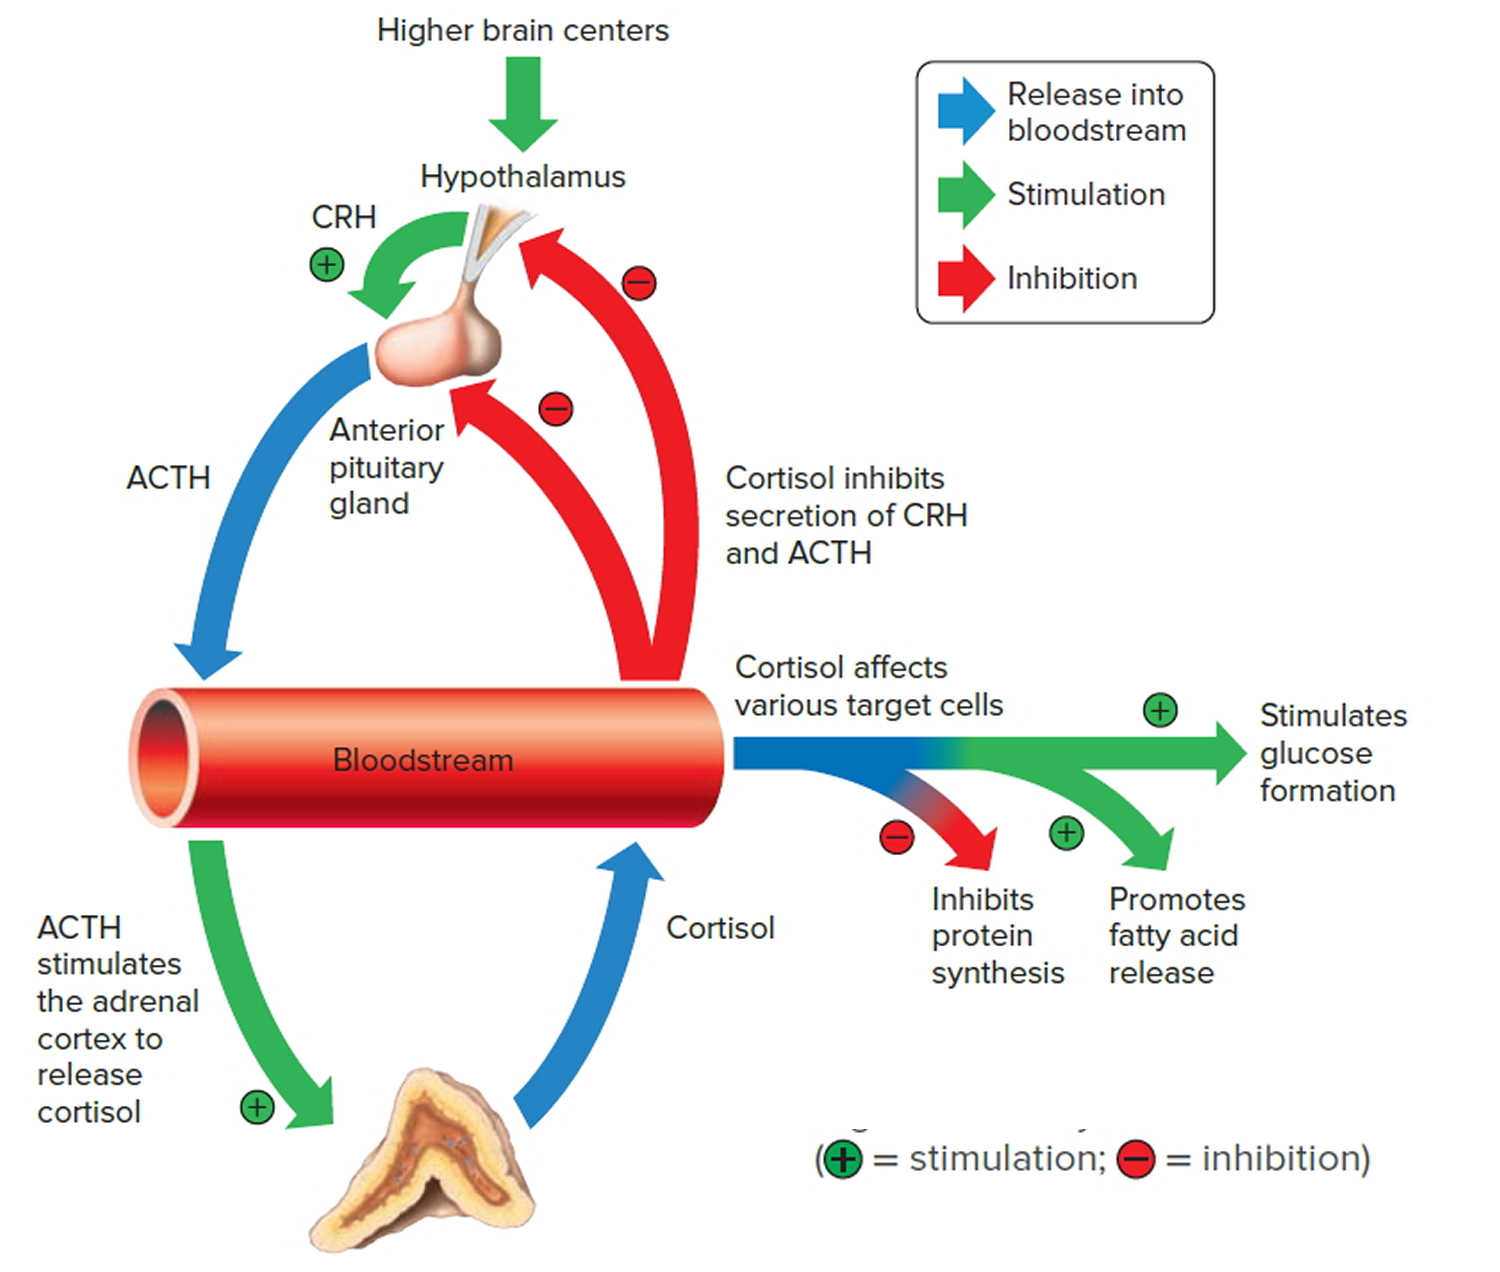 regulation of corisol secreti